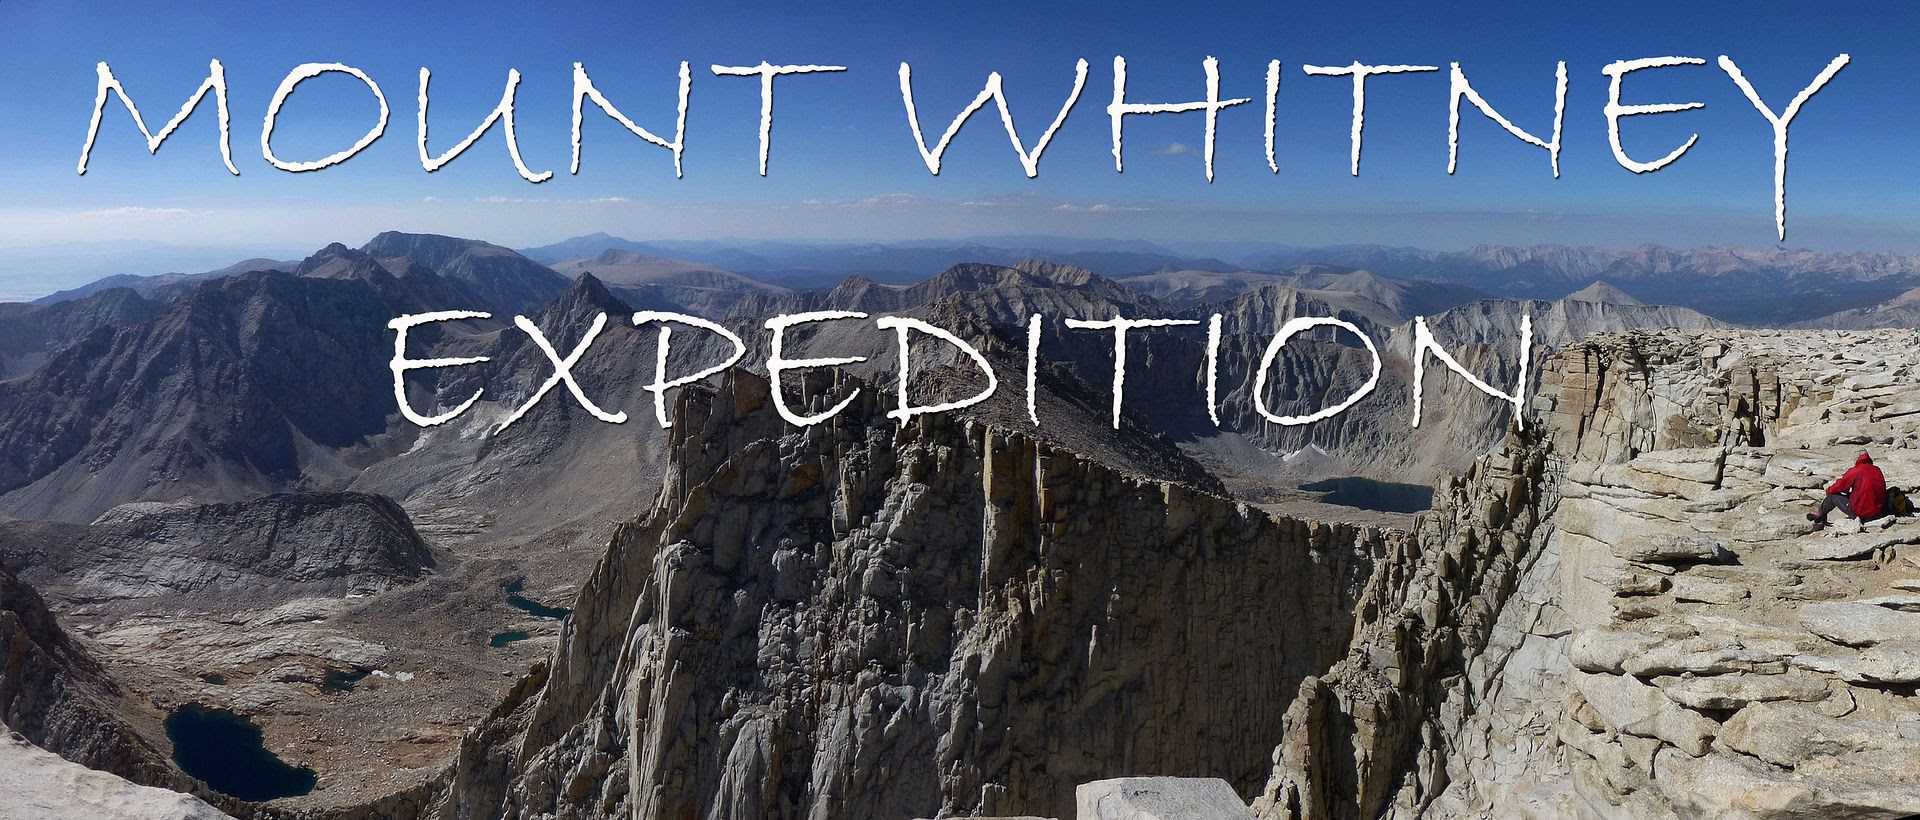 · 2012/08 MOUNT WHITNEY (4.421 M) HIGH SIERRA CALIFORNIA (USA)